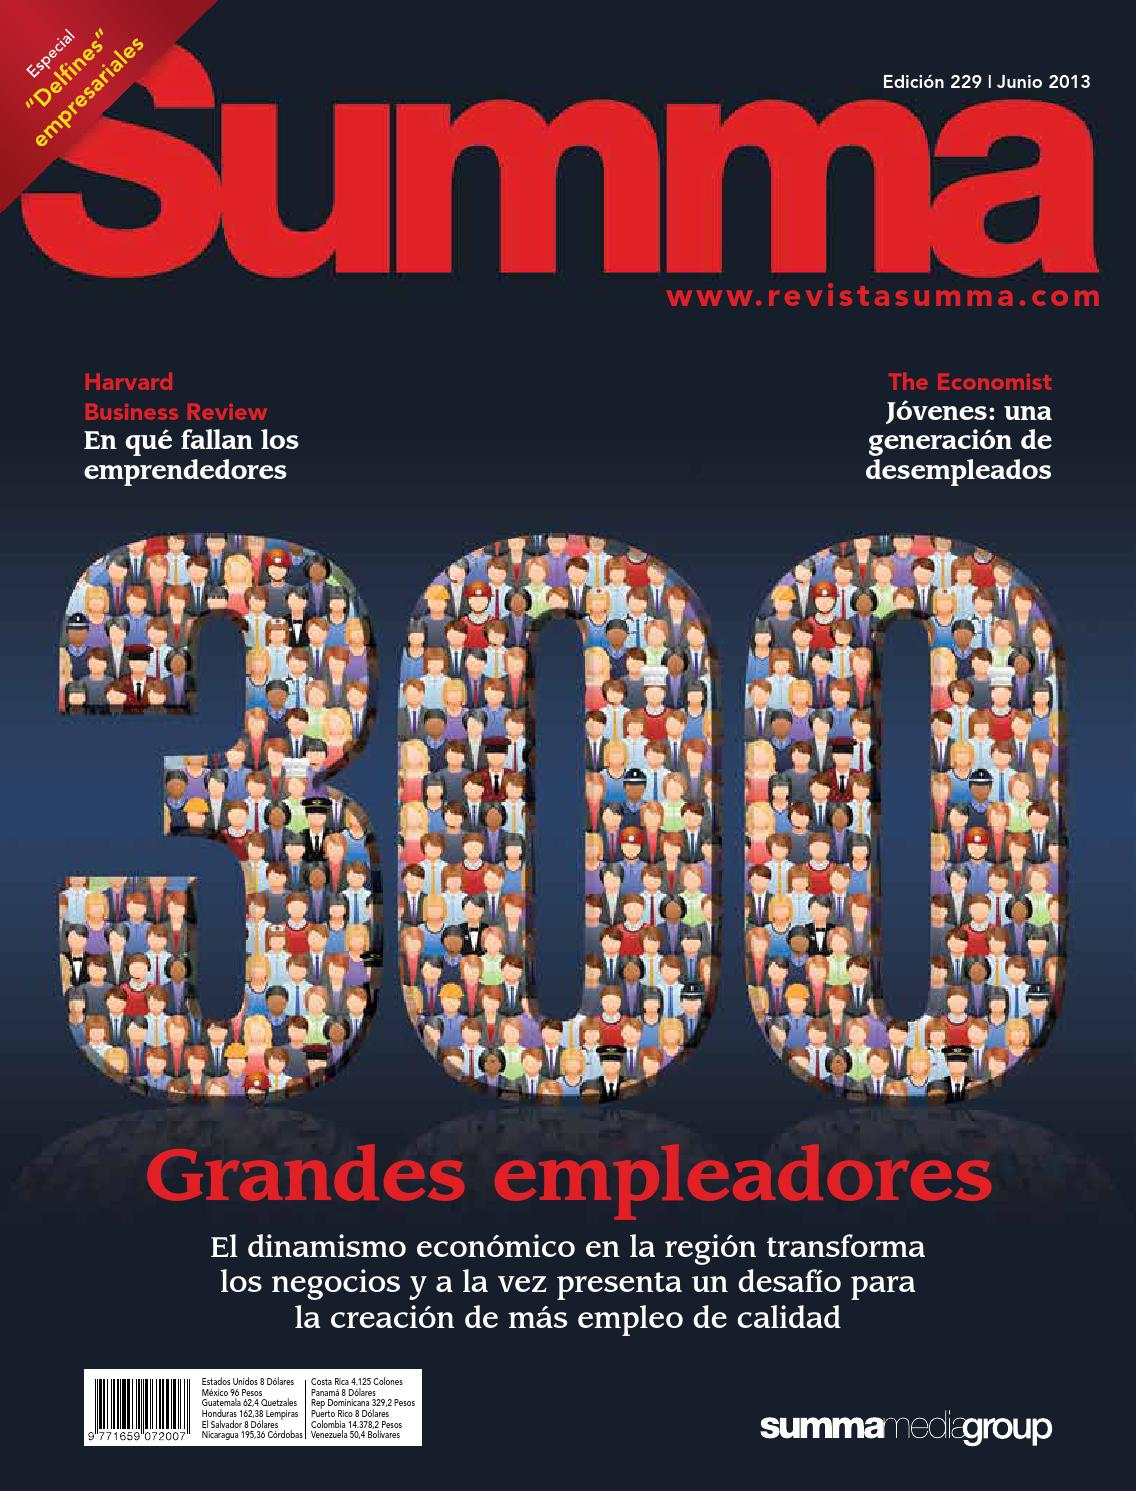 b0ffc2ac6de3b Edición 229 by Revista Summa - issuu